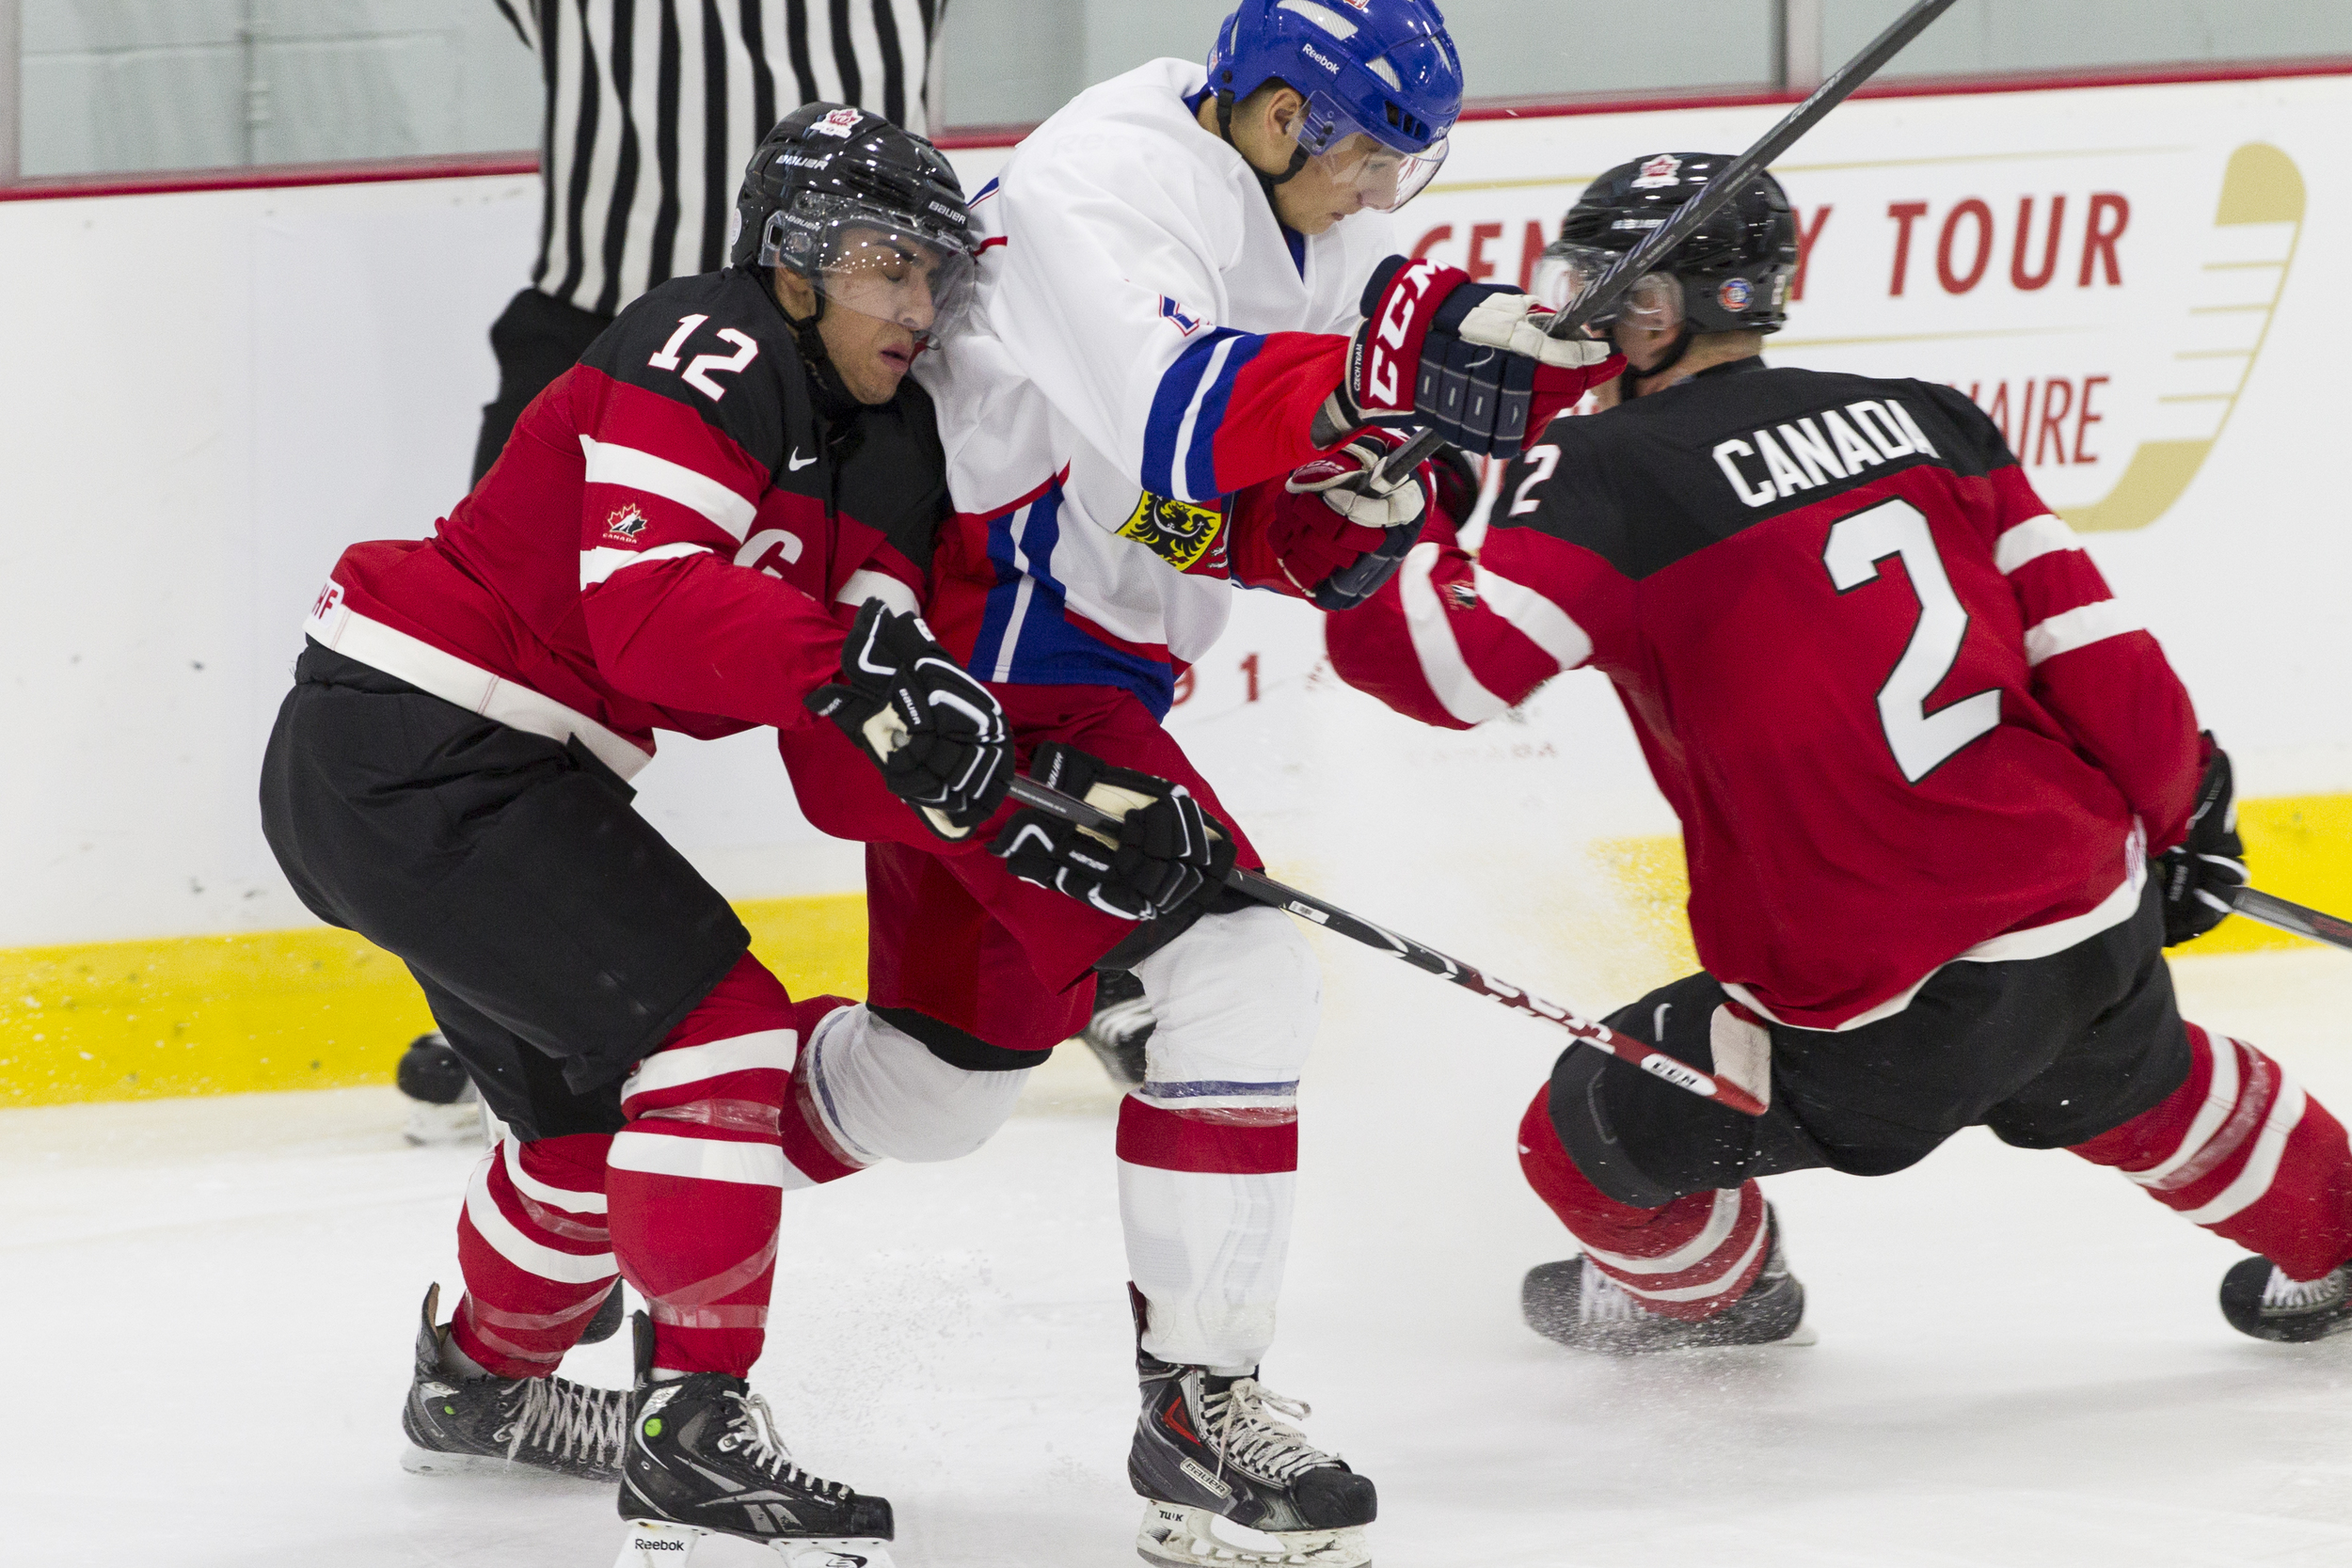 2014-08-08_WORLD-JUNIORS_1006.JPG